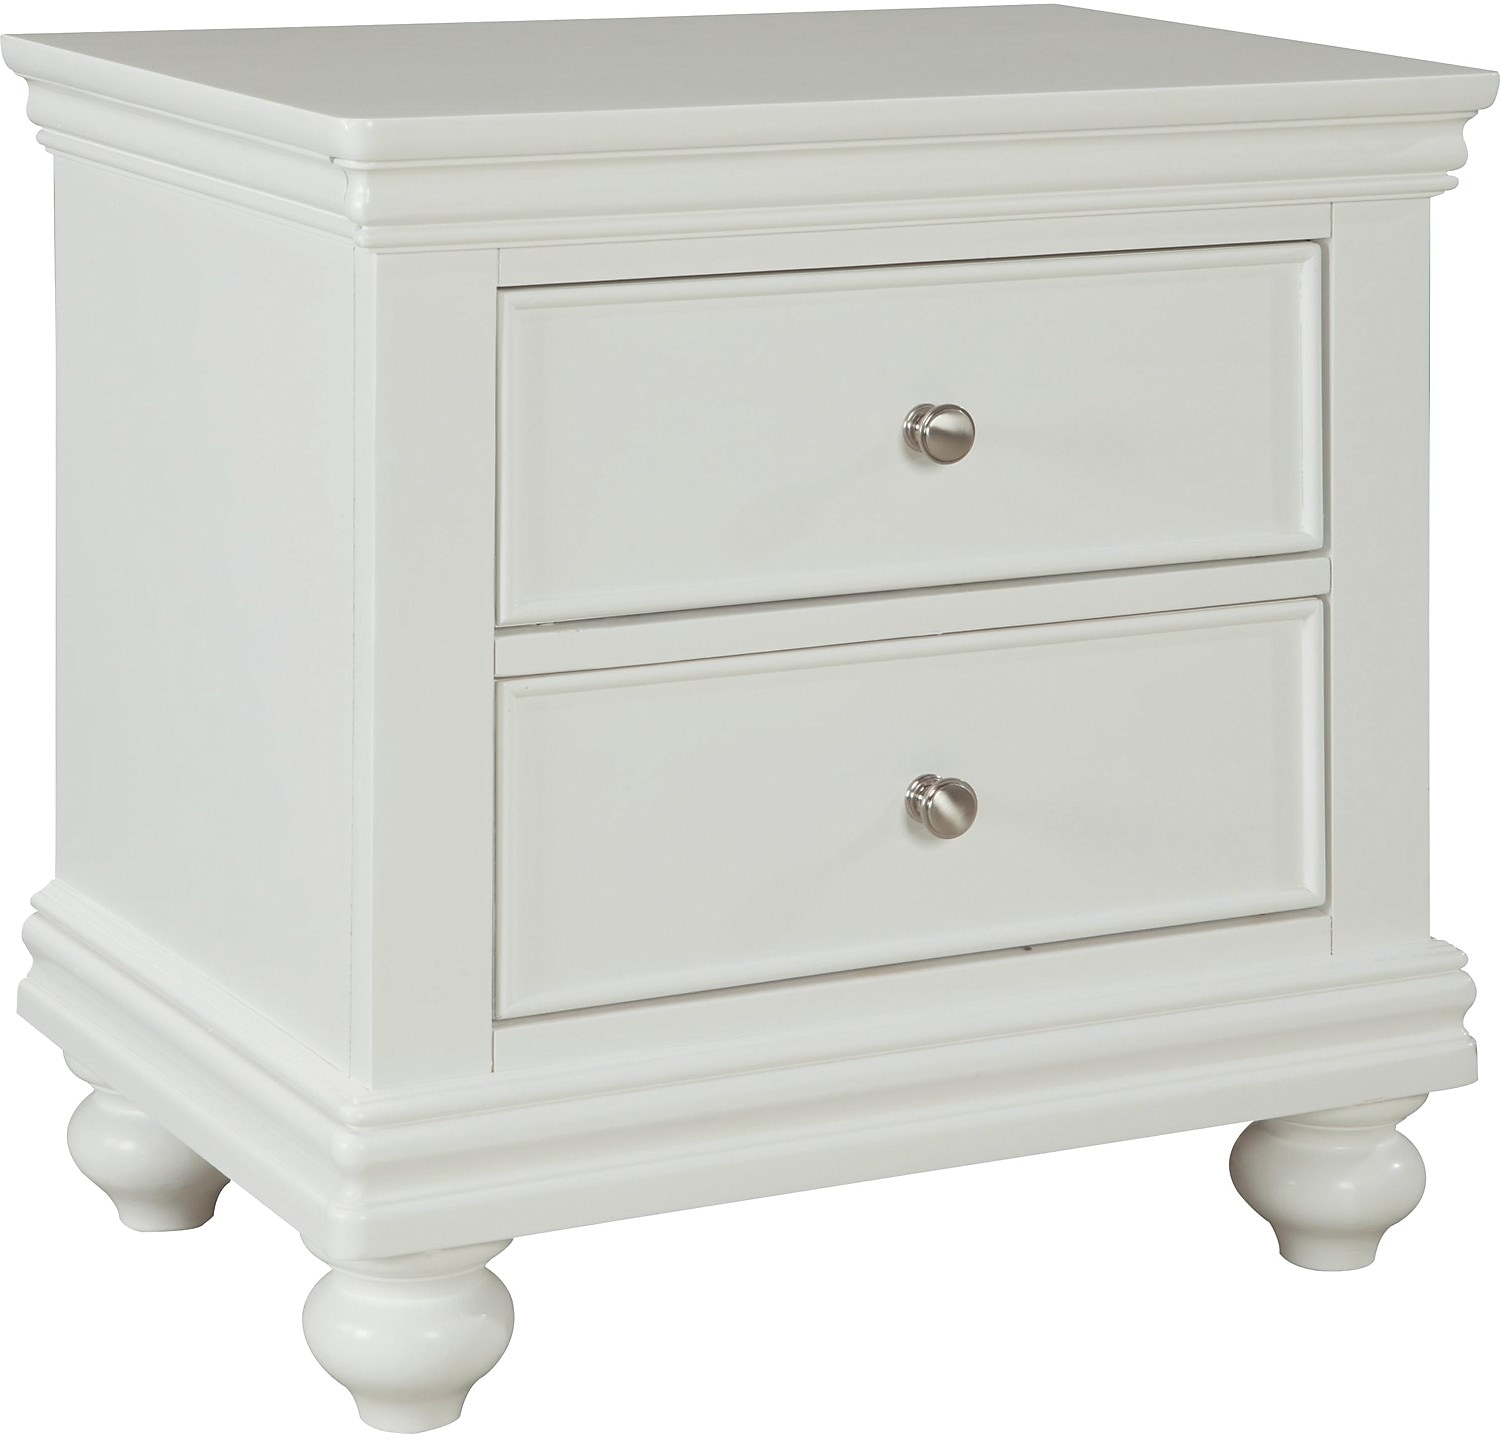 Bridgeport Nightstand White The Brick